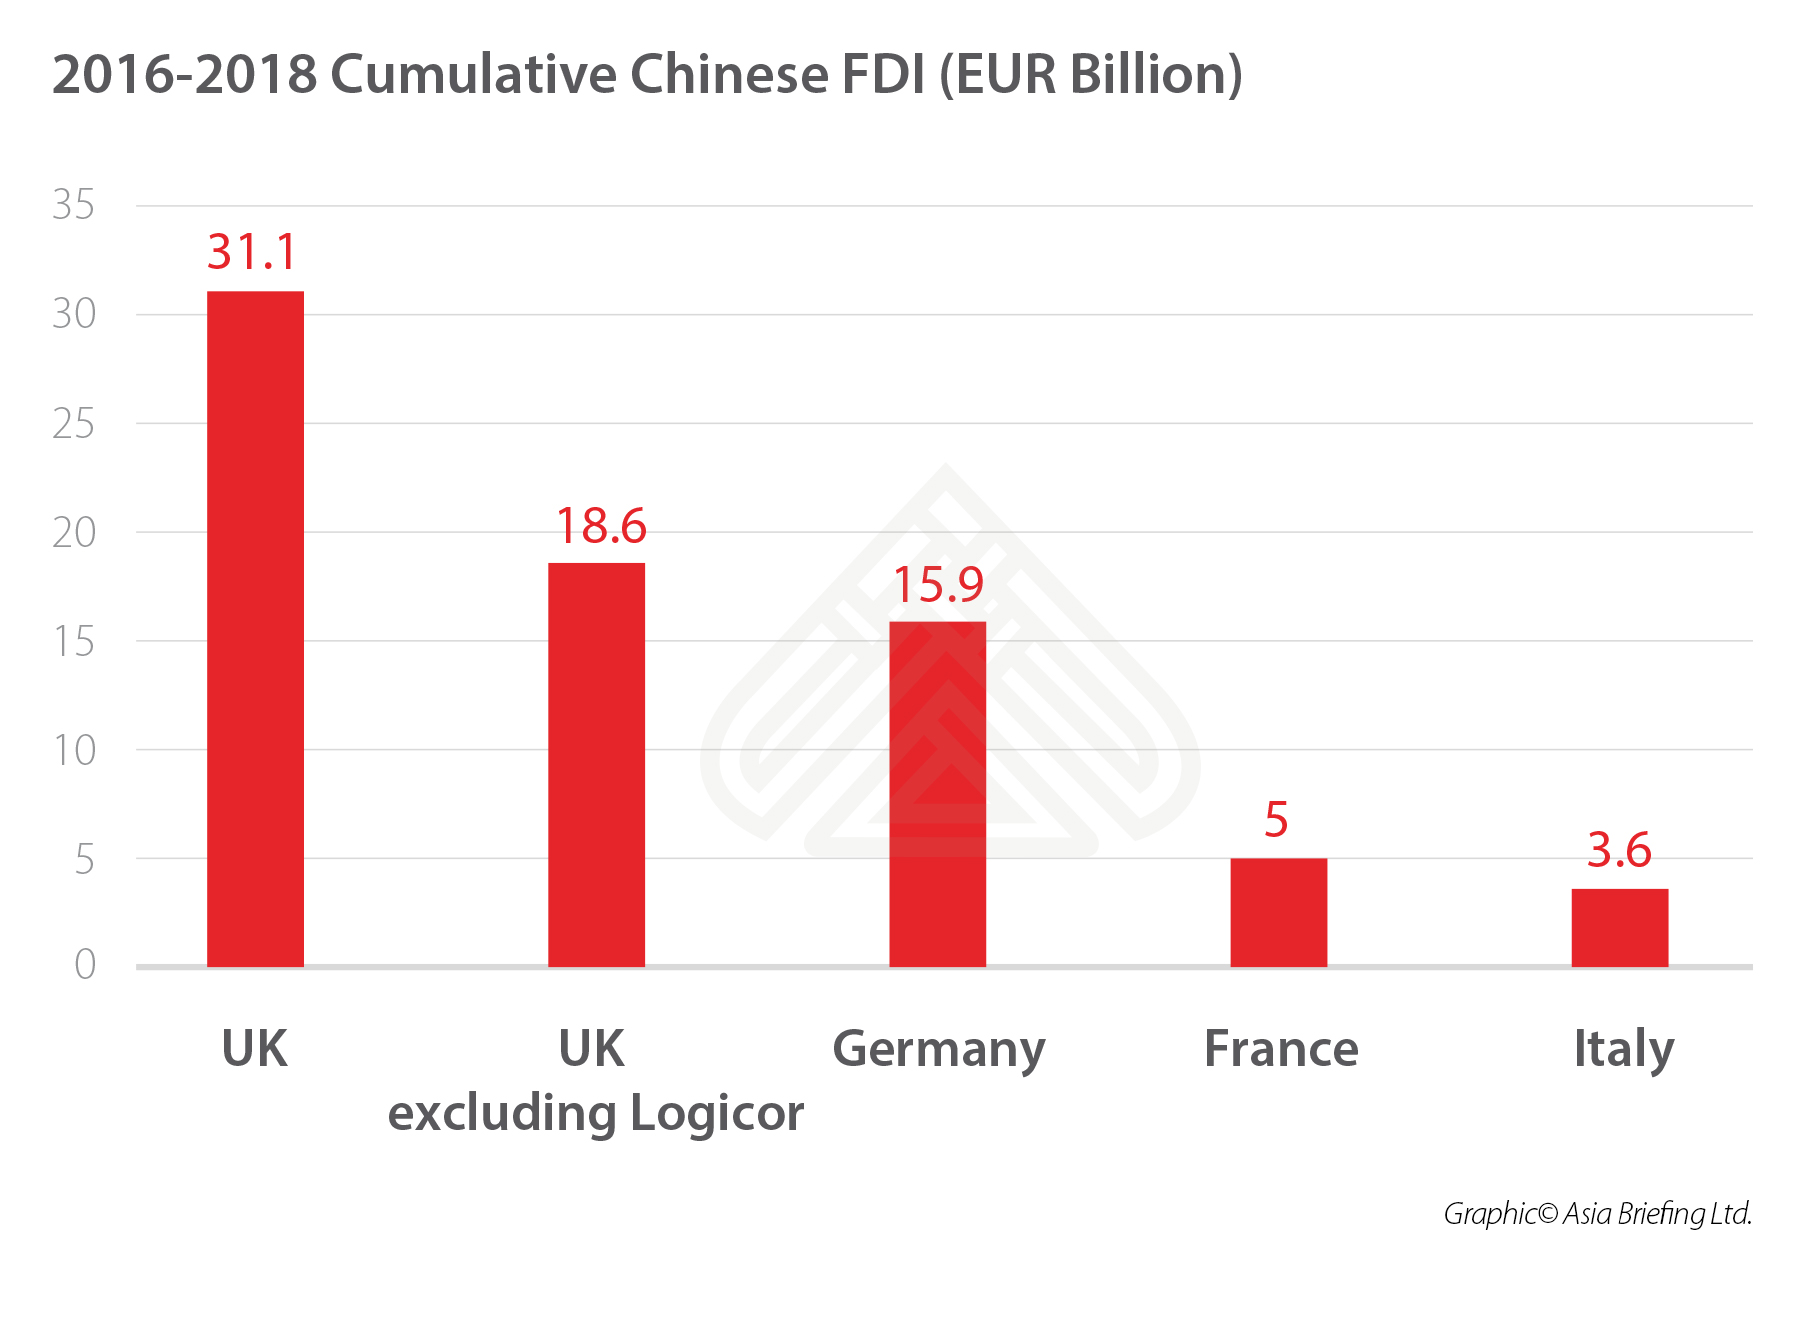 china-major-EU-economies-FDI-2016-2018